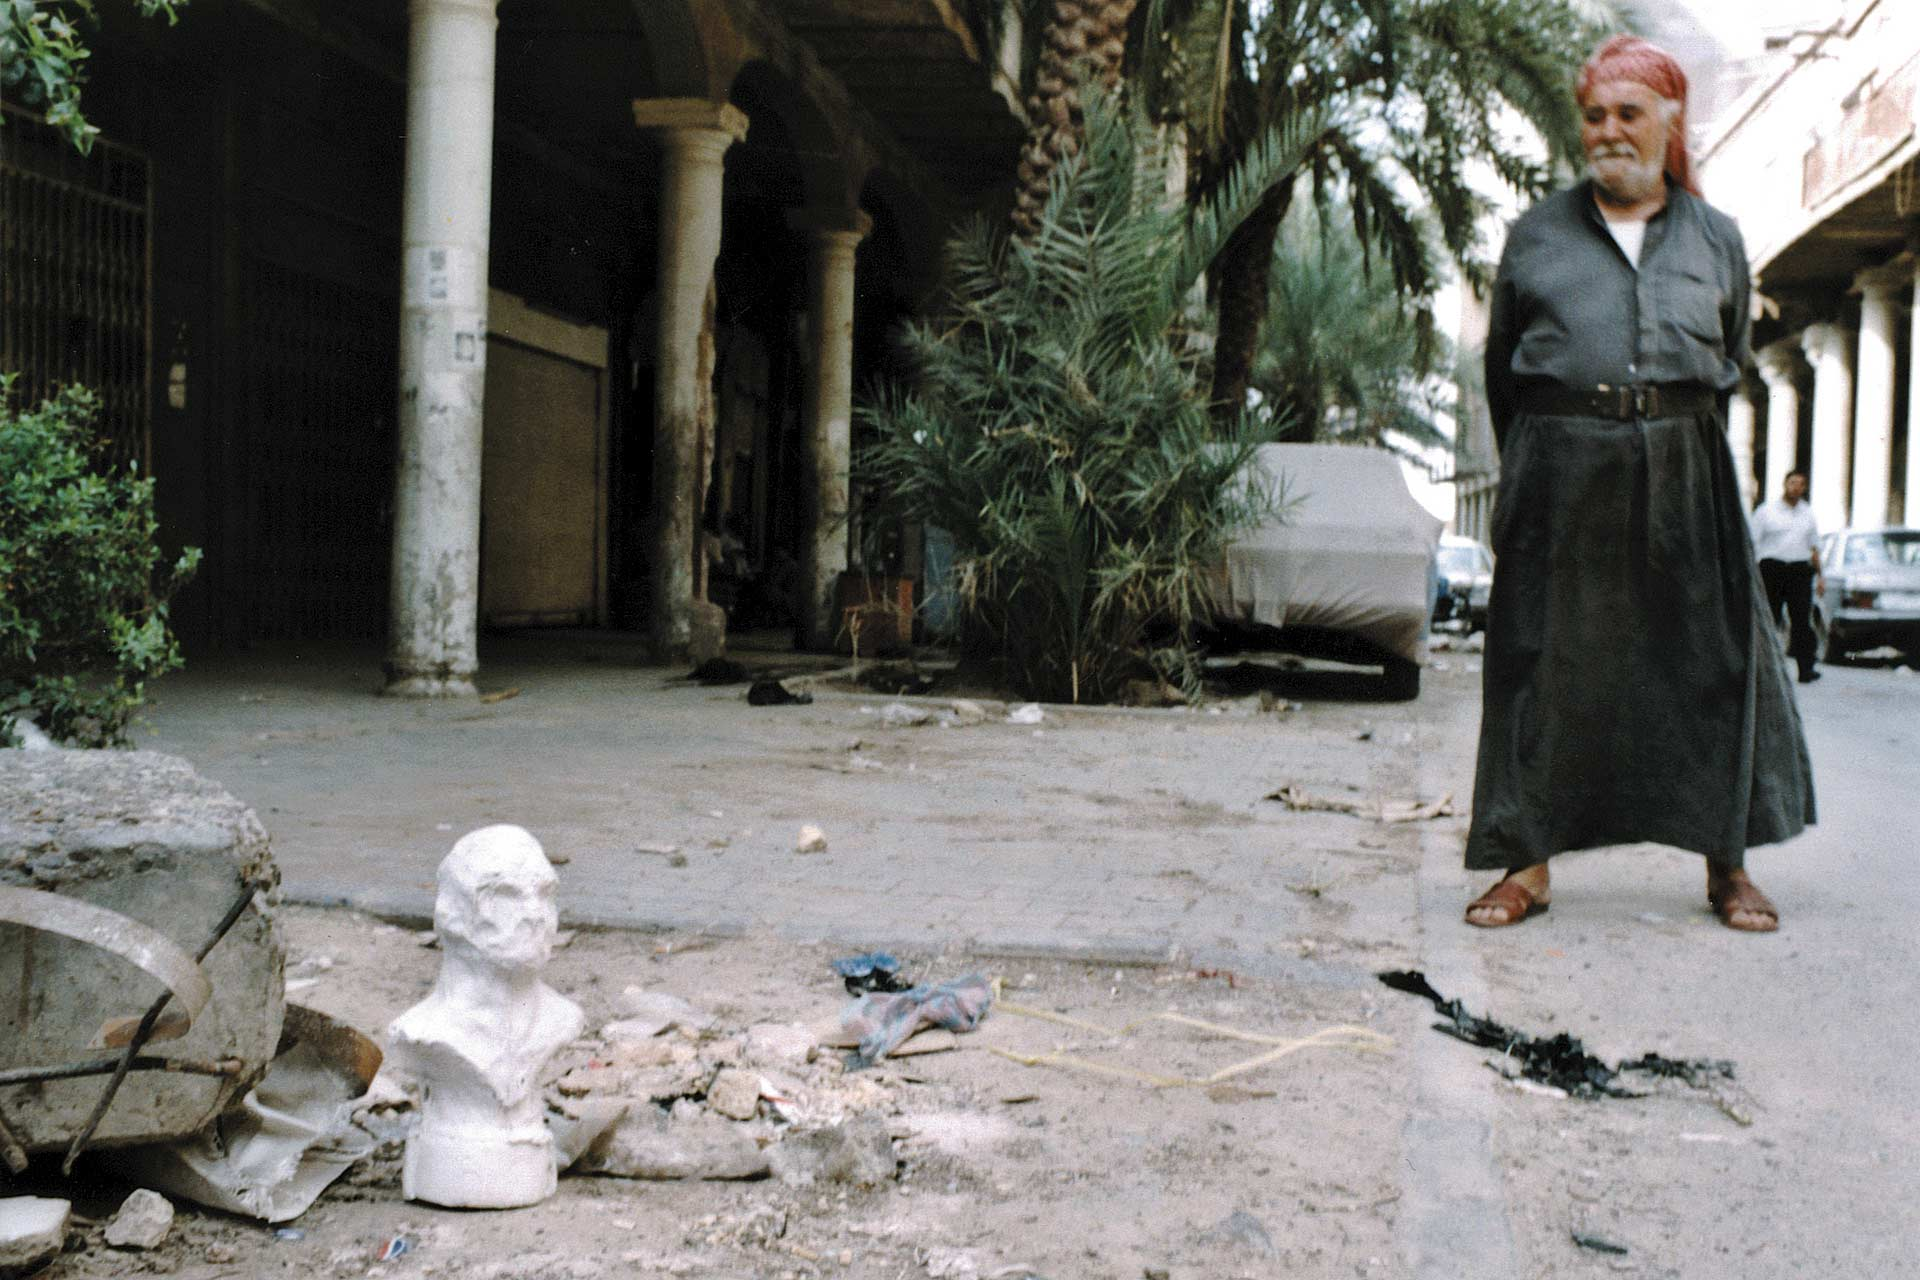 Envinronmental Wanderer (Baghdad, Iraq) 2002, ongoing Project involving 5 plaster casts left in different locations around the world. C-type Print on aluminium, 100x70 cm.